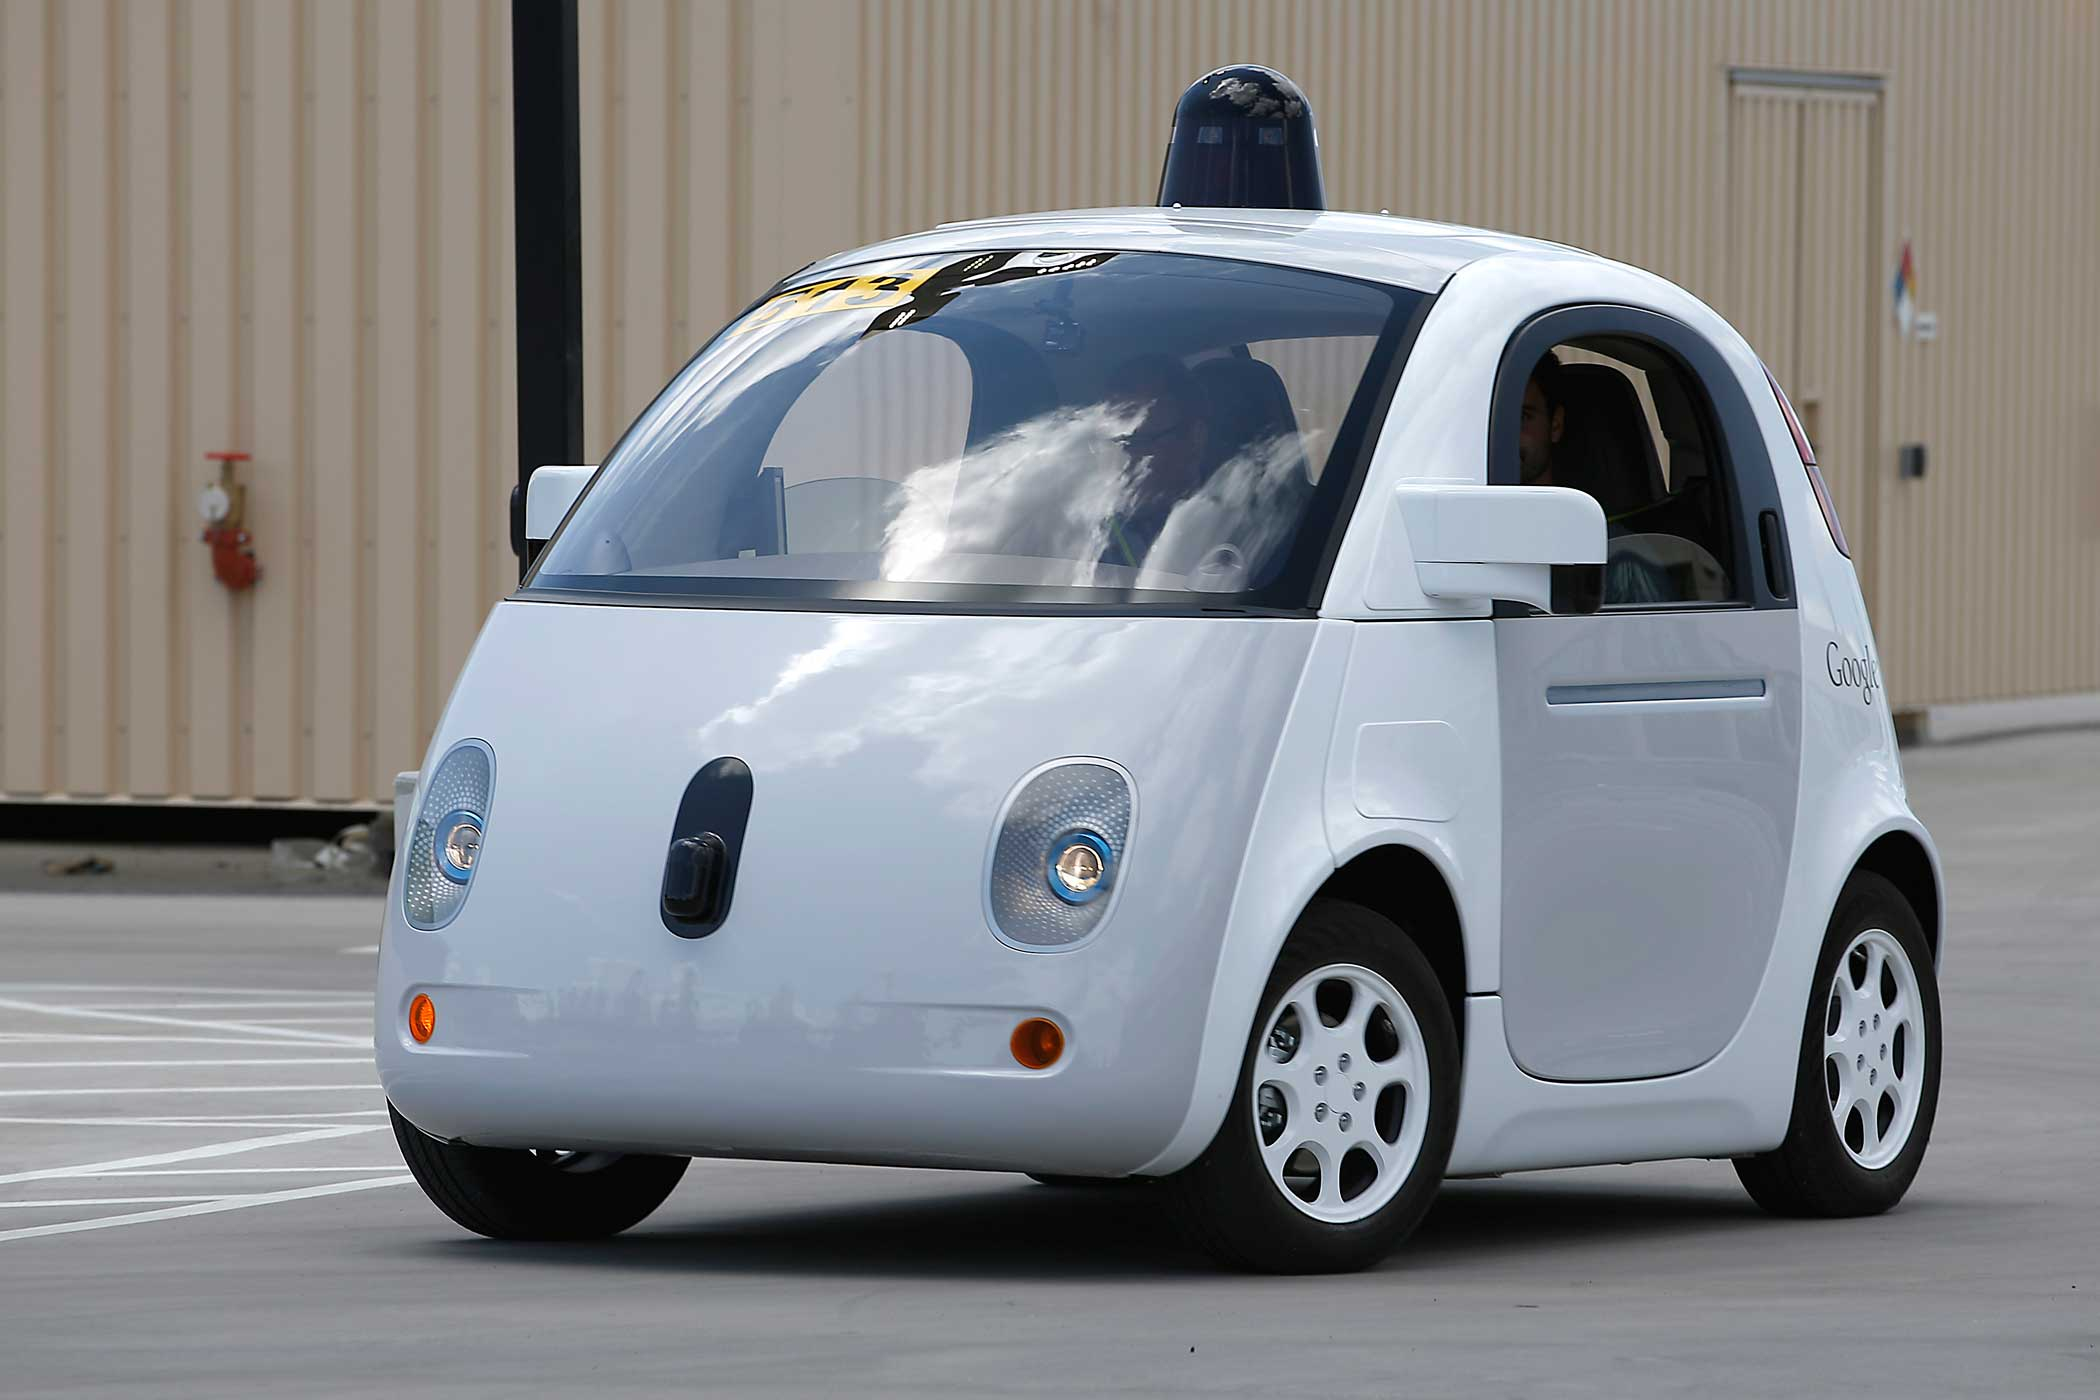 Google X: Google's most ambitious projects, such as its self-driving cars, often begin in this secretive research department